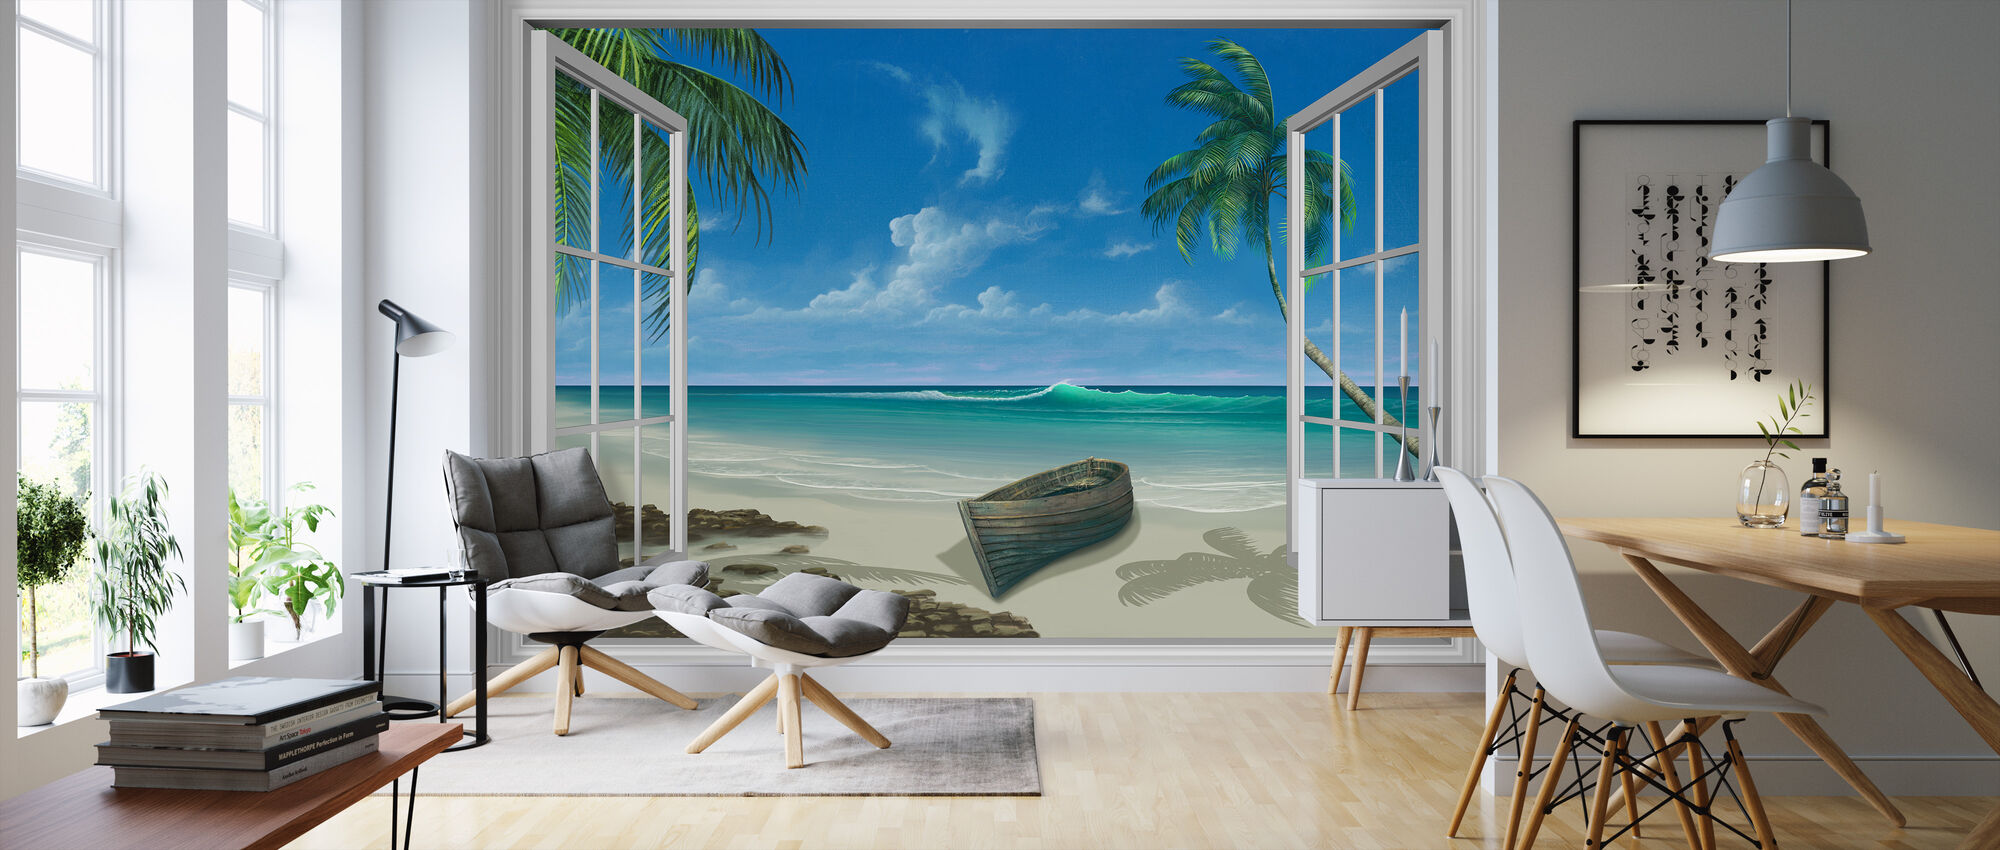 Escape to Paradise - Wallpaper - Living Room